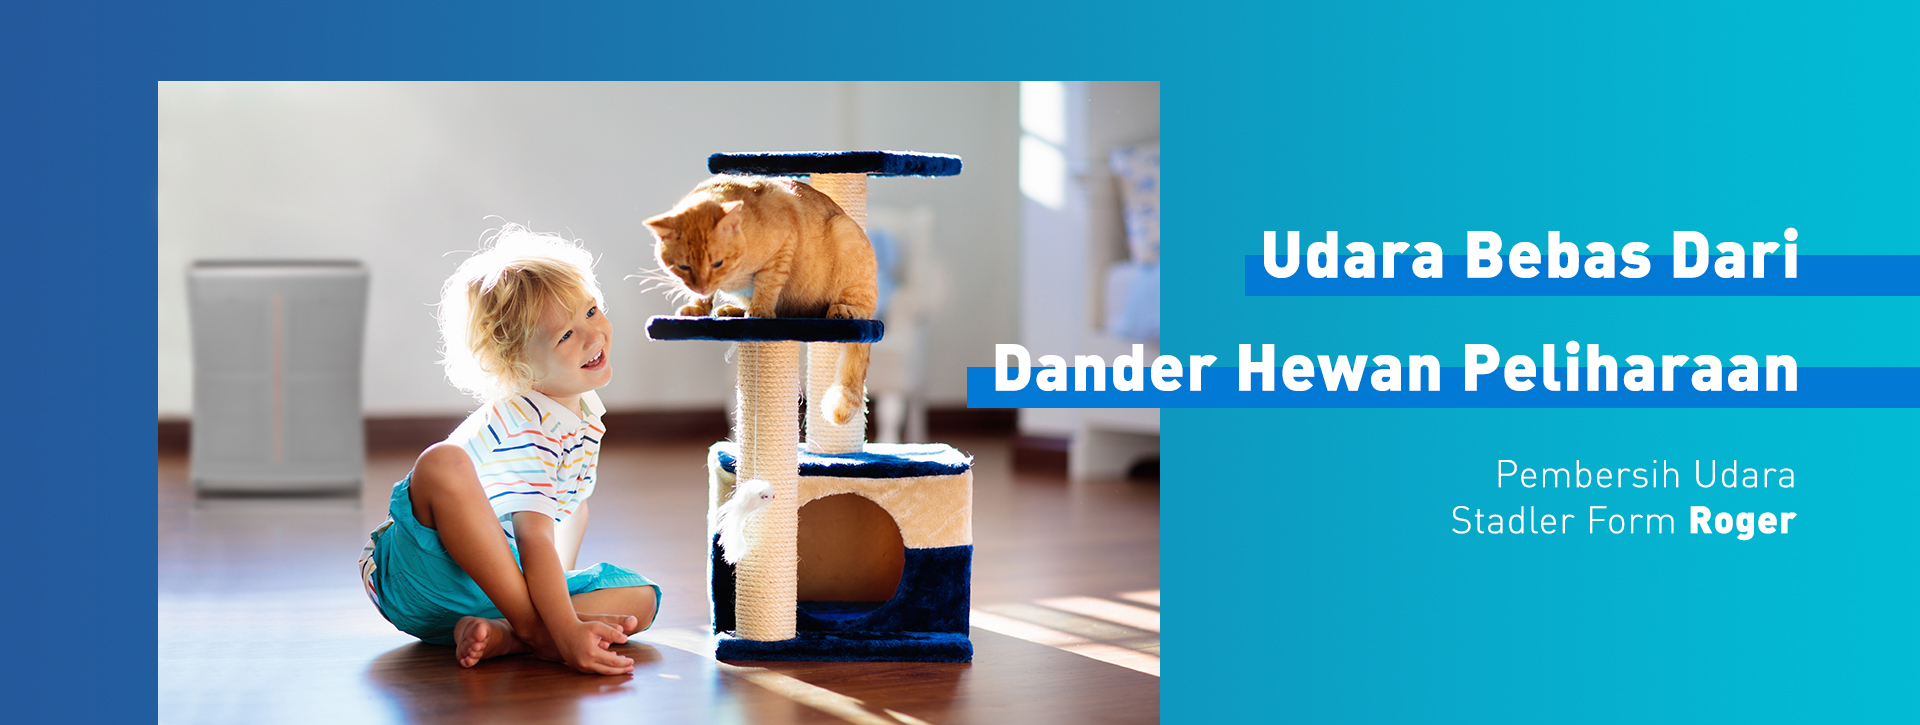 Child playing with cat pet near air purifier Roger from Stadler Form